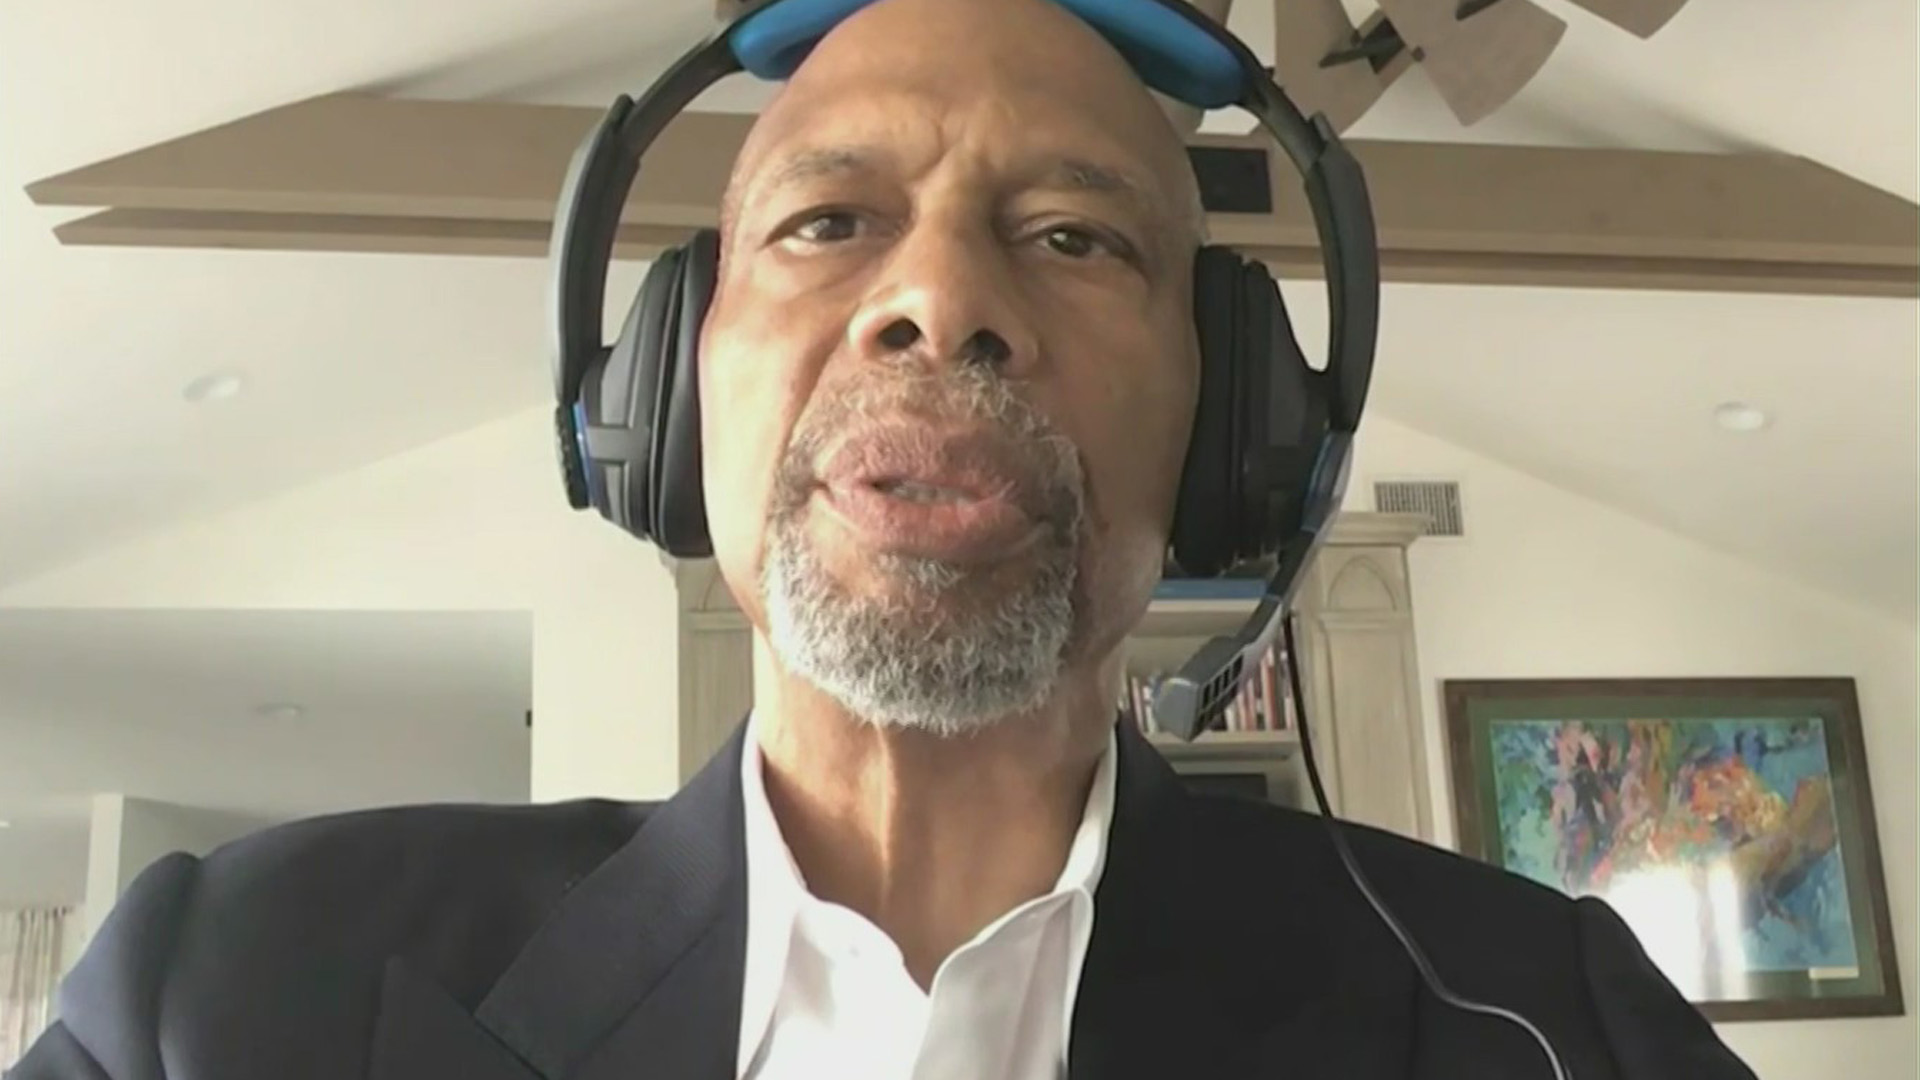 Lakers Kareem Abdul-Jabbar appears in an interview with KTLA on May 31, 2020. (KTLA)